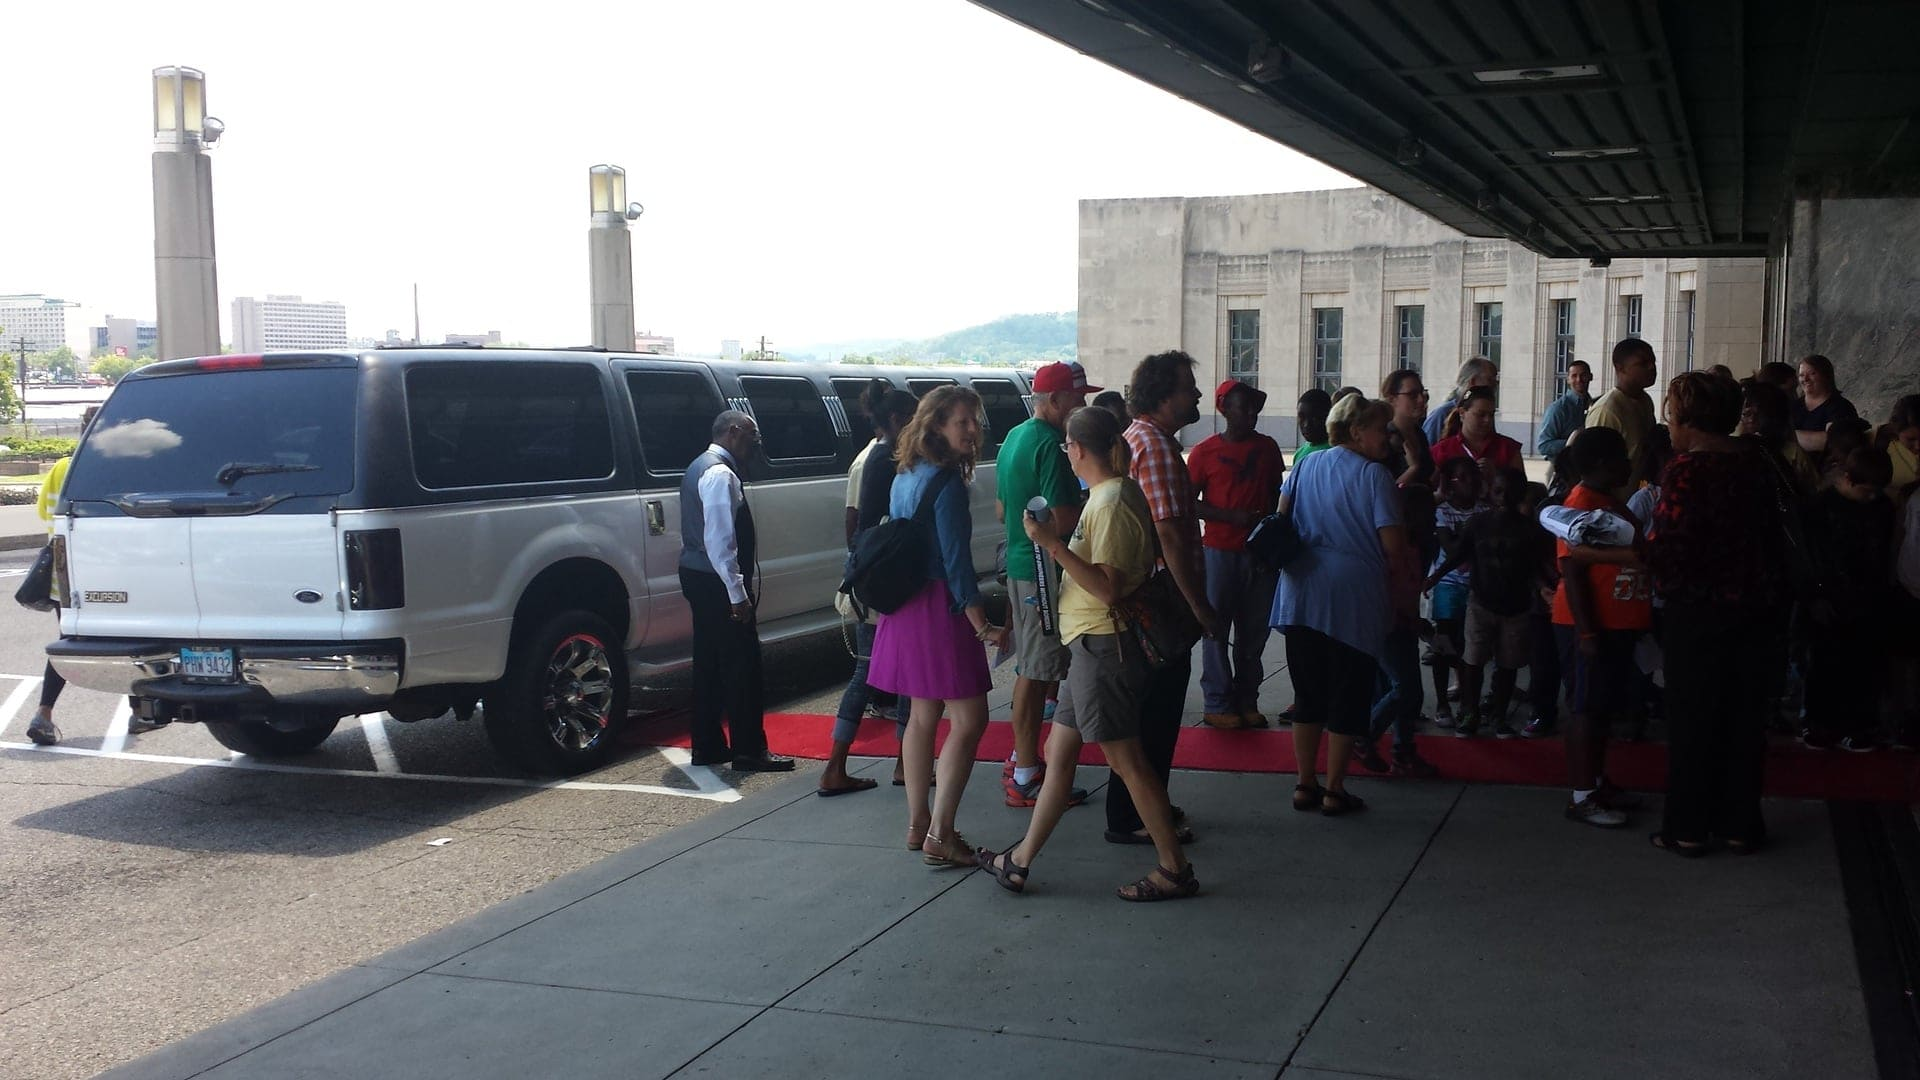 Happen Red Carpet Movie Premier. The filmmakers on the way to the limo.